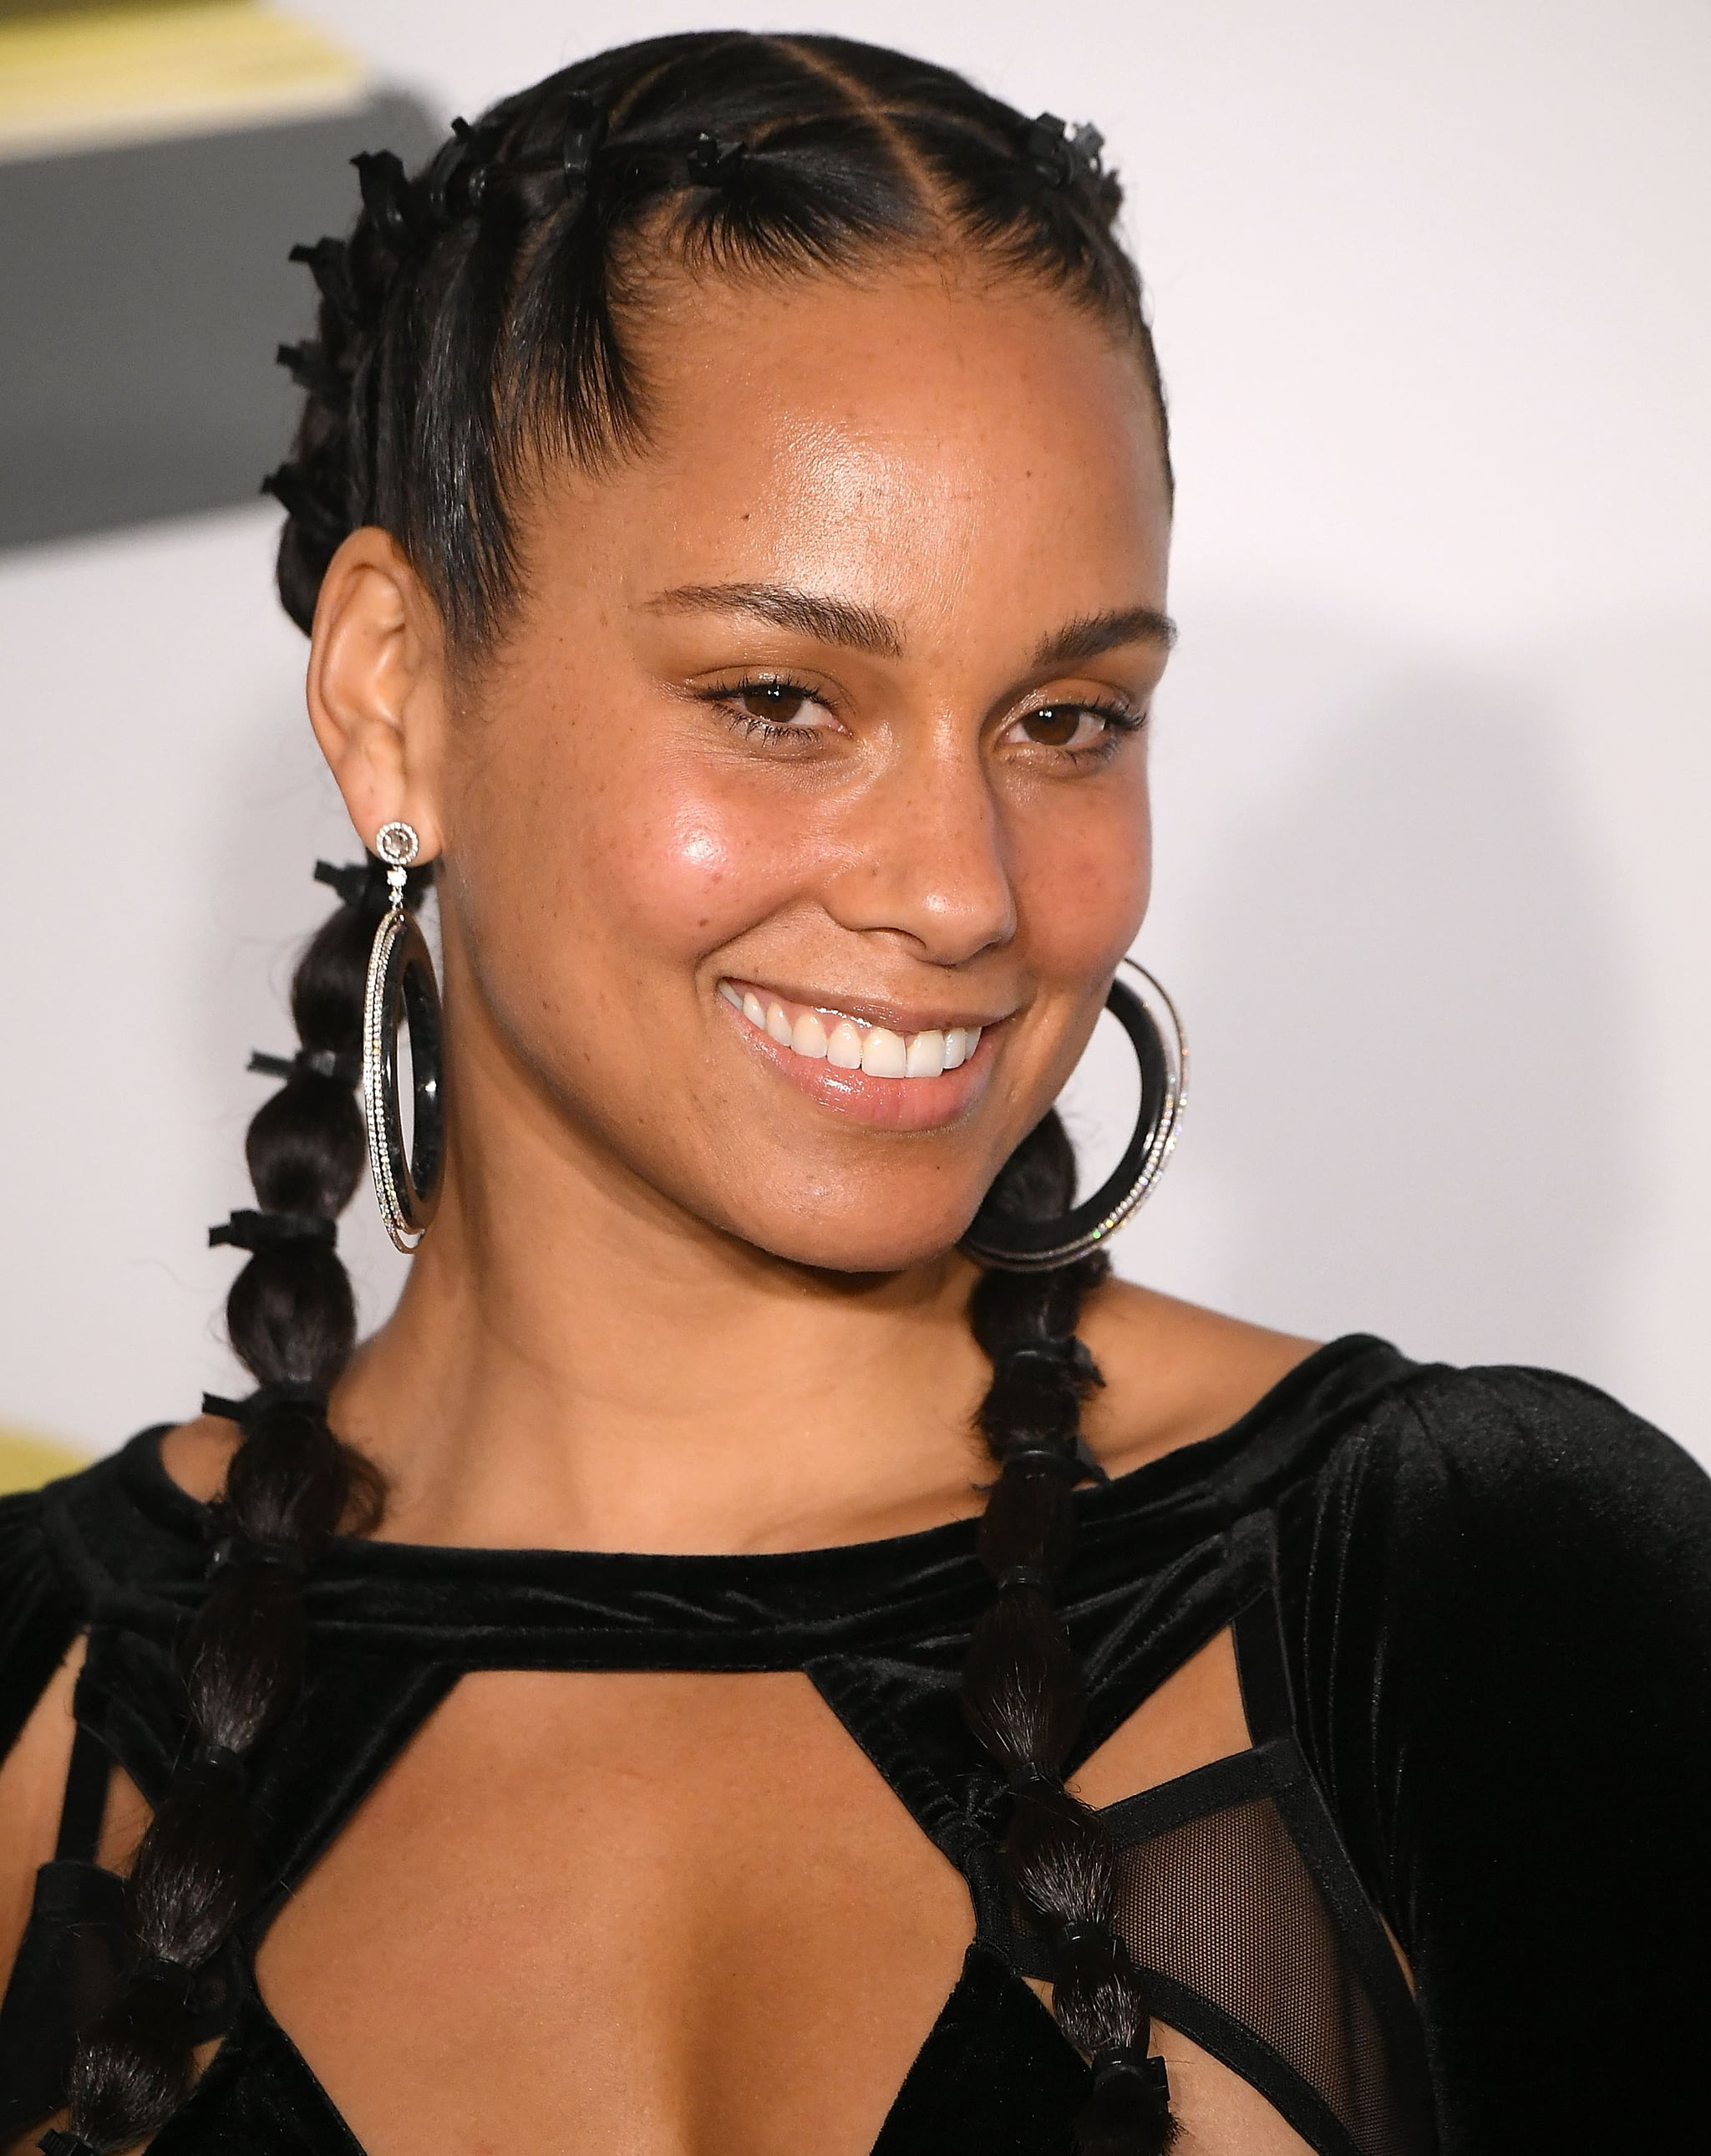 Alicia Keys Without Makeup | Alicia Keys Will Look Hot Without Makeup at the Grammys, and Here's Proof | POPSUGAR Beauty Photo 10